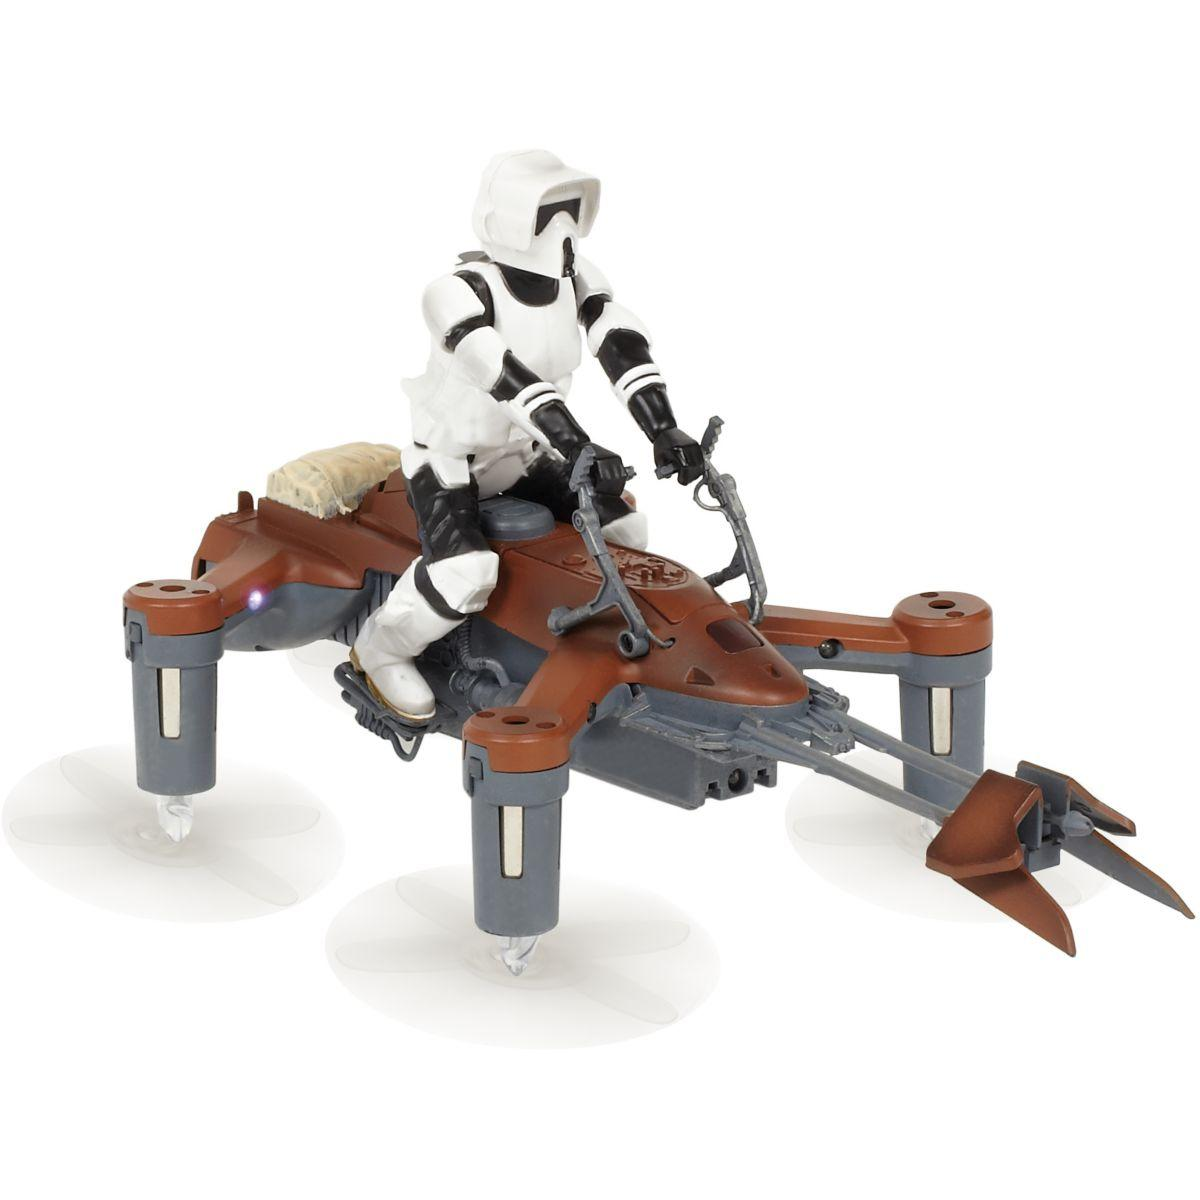 Drones proporta star wars speeder bike 7 - livraison offerte : code liv (photo)